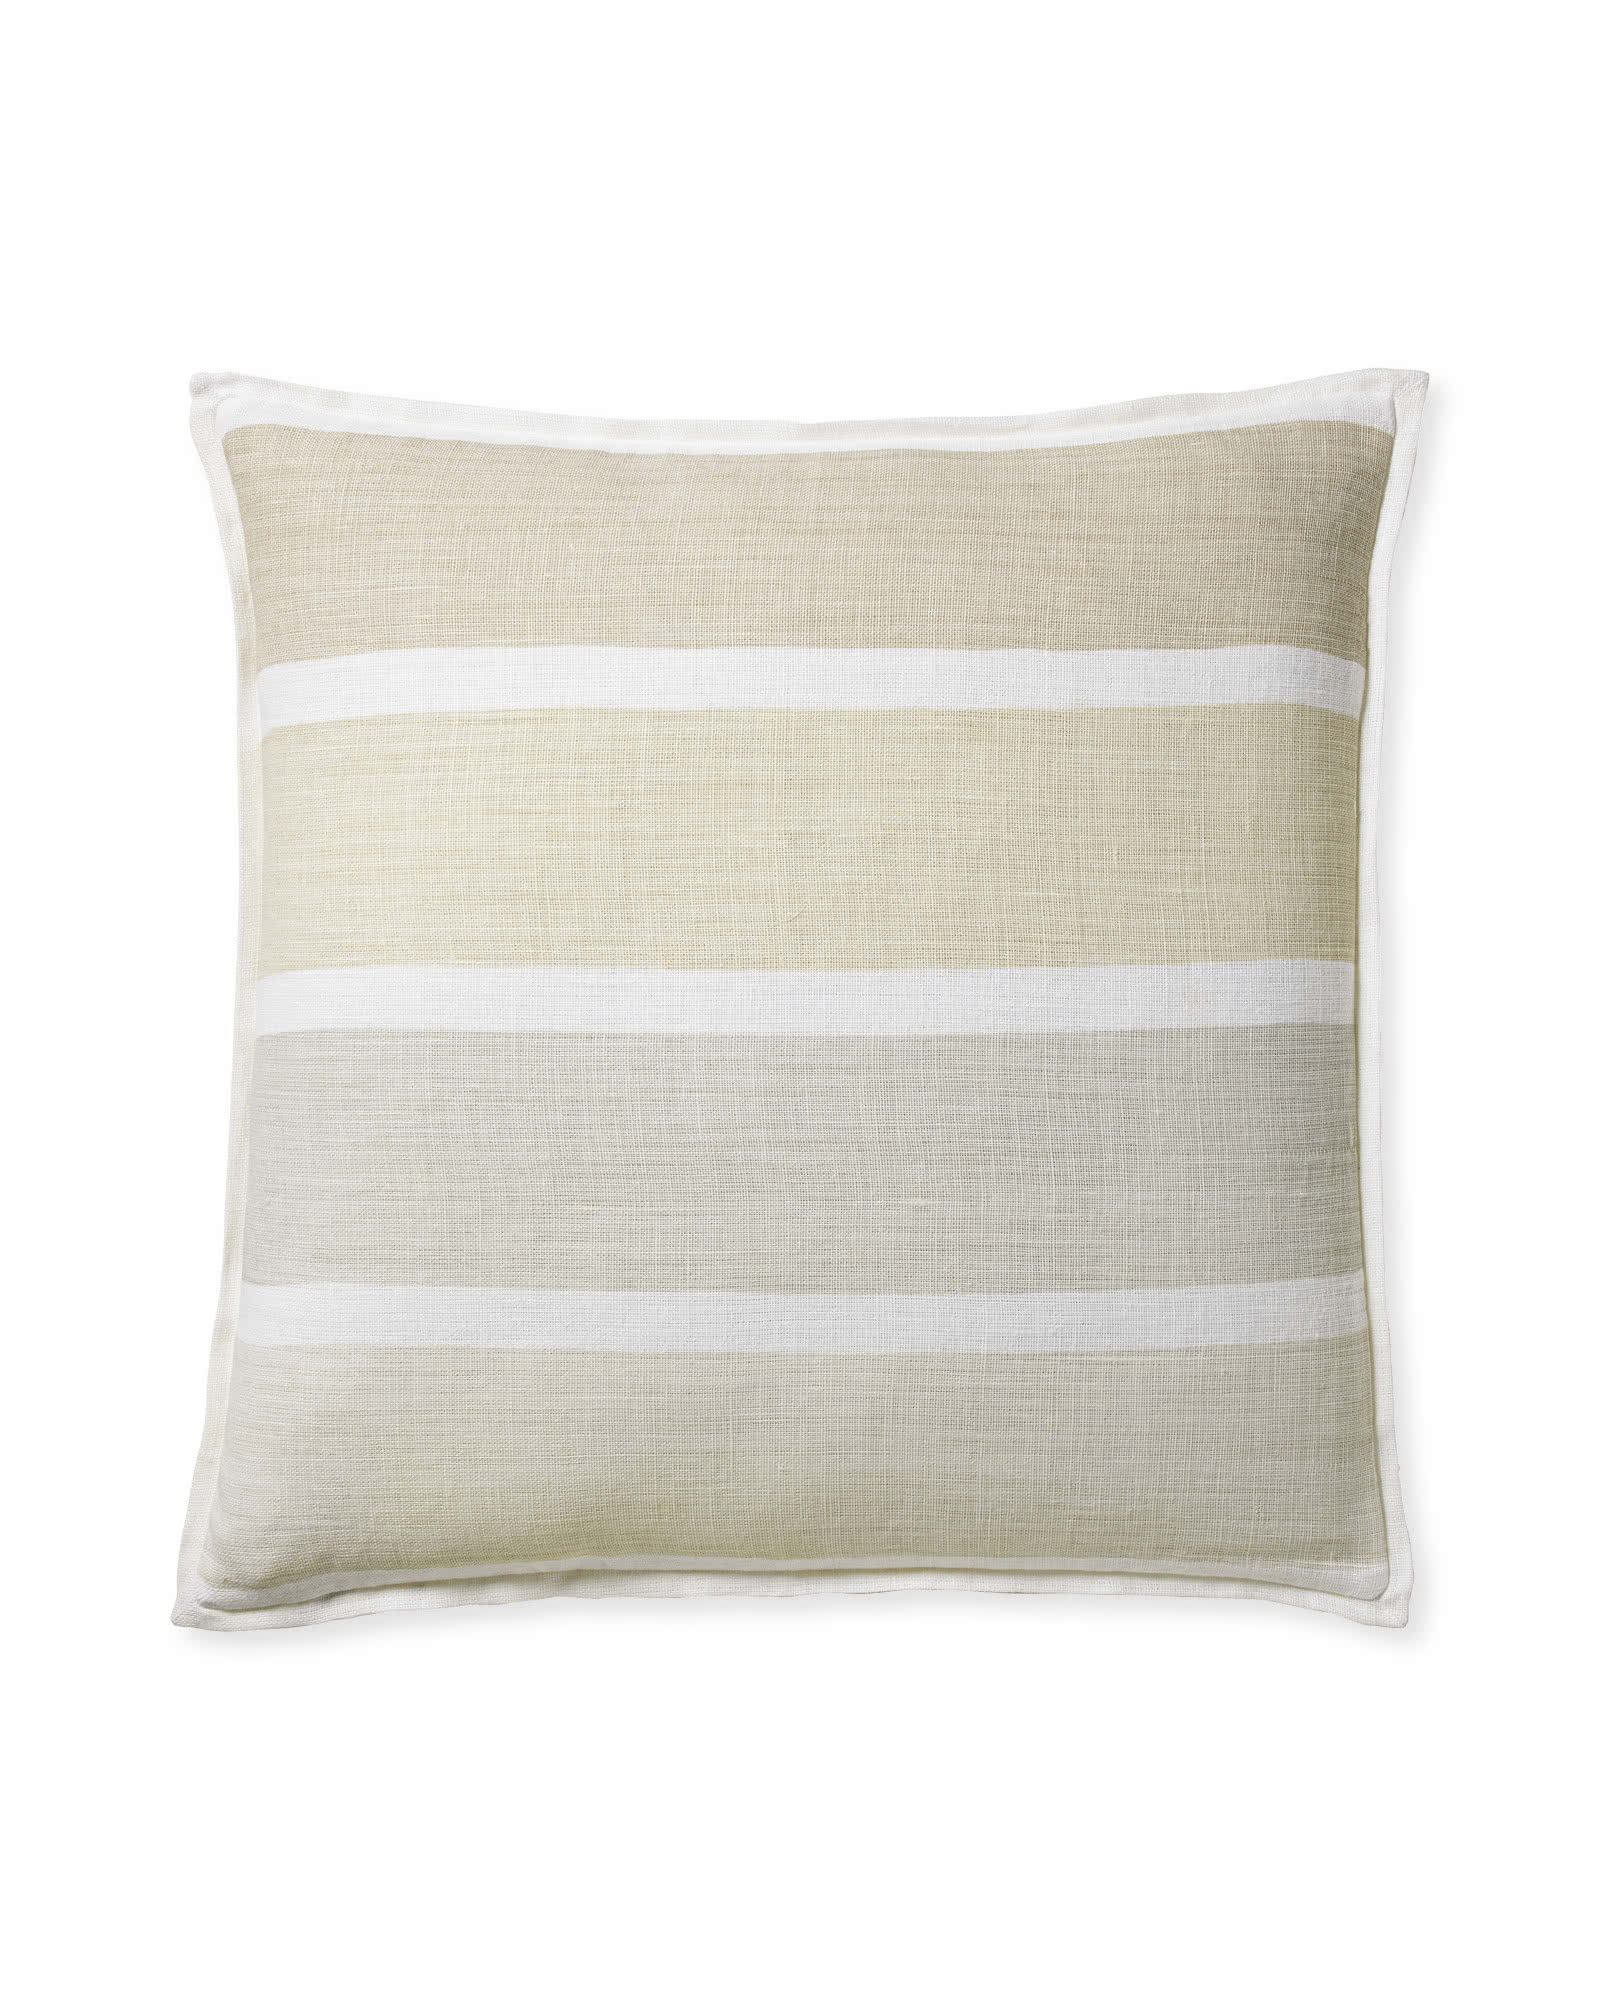 Coastal Stripe Pillow Cover, Sand